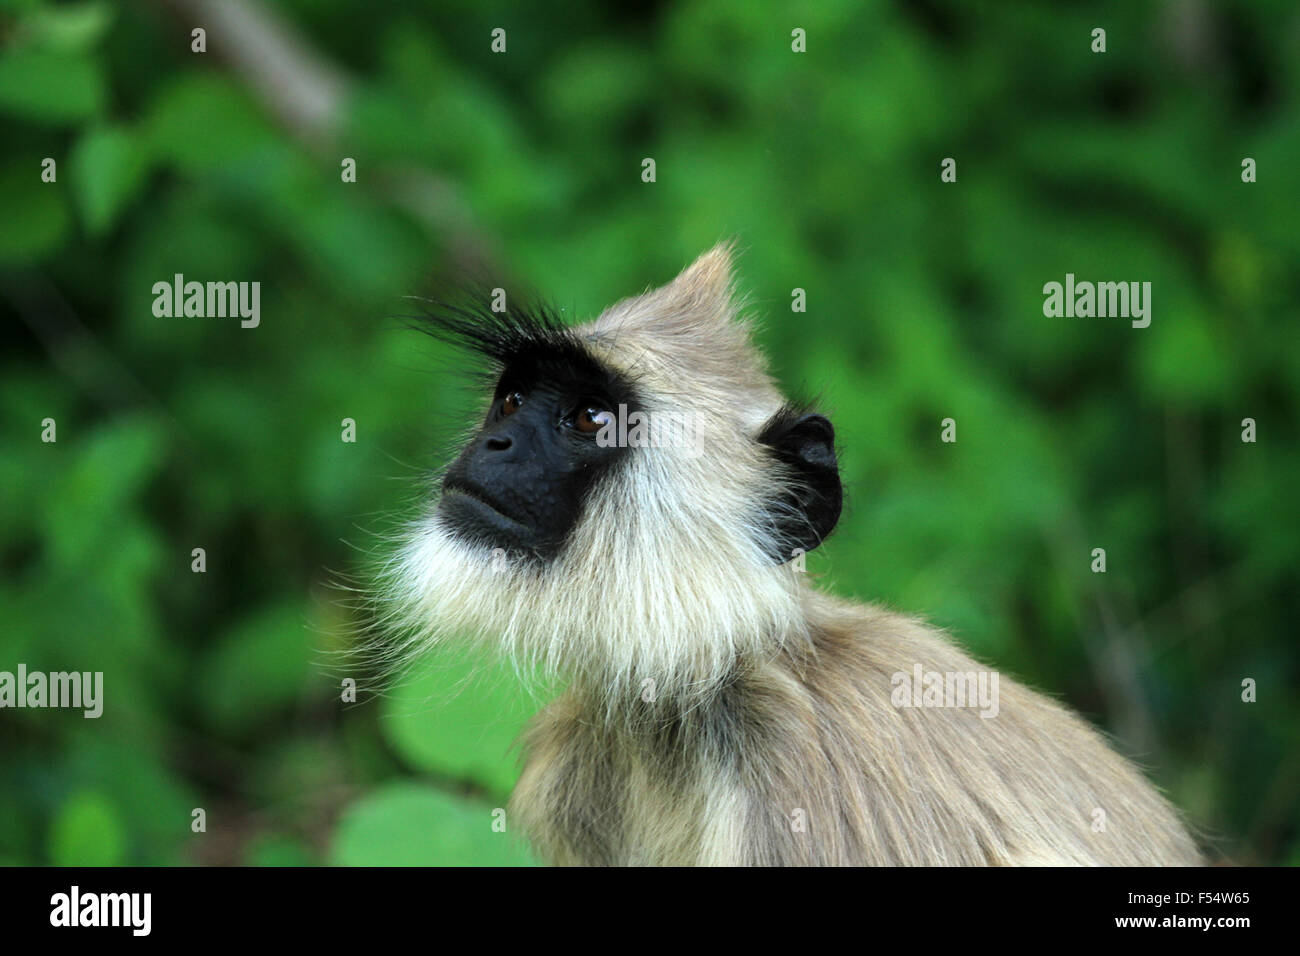 Gray langurs or Hanuman langurs, the most widespread langurs of South Asia, are a group of Old World monkeys. - Stock Image